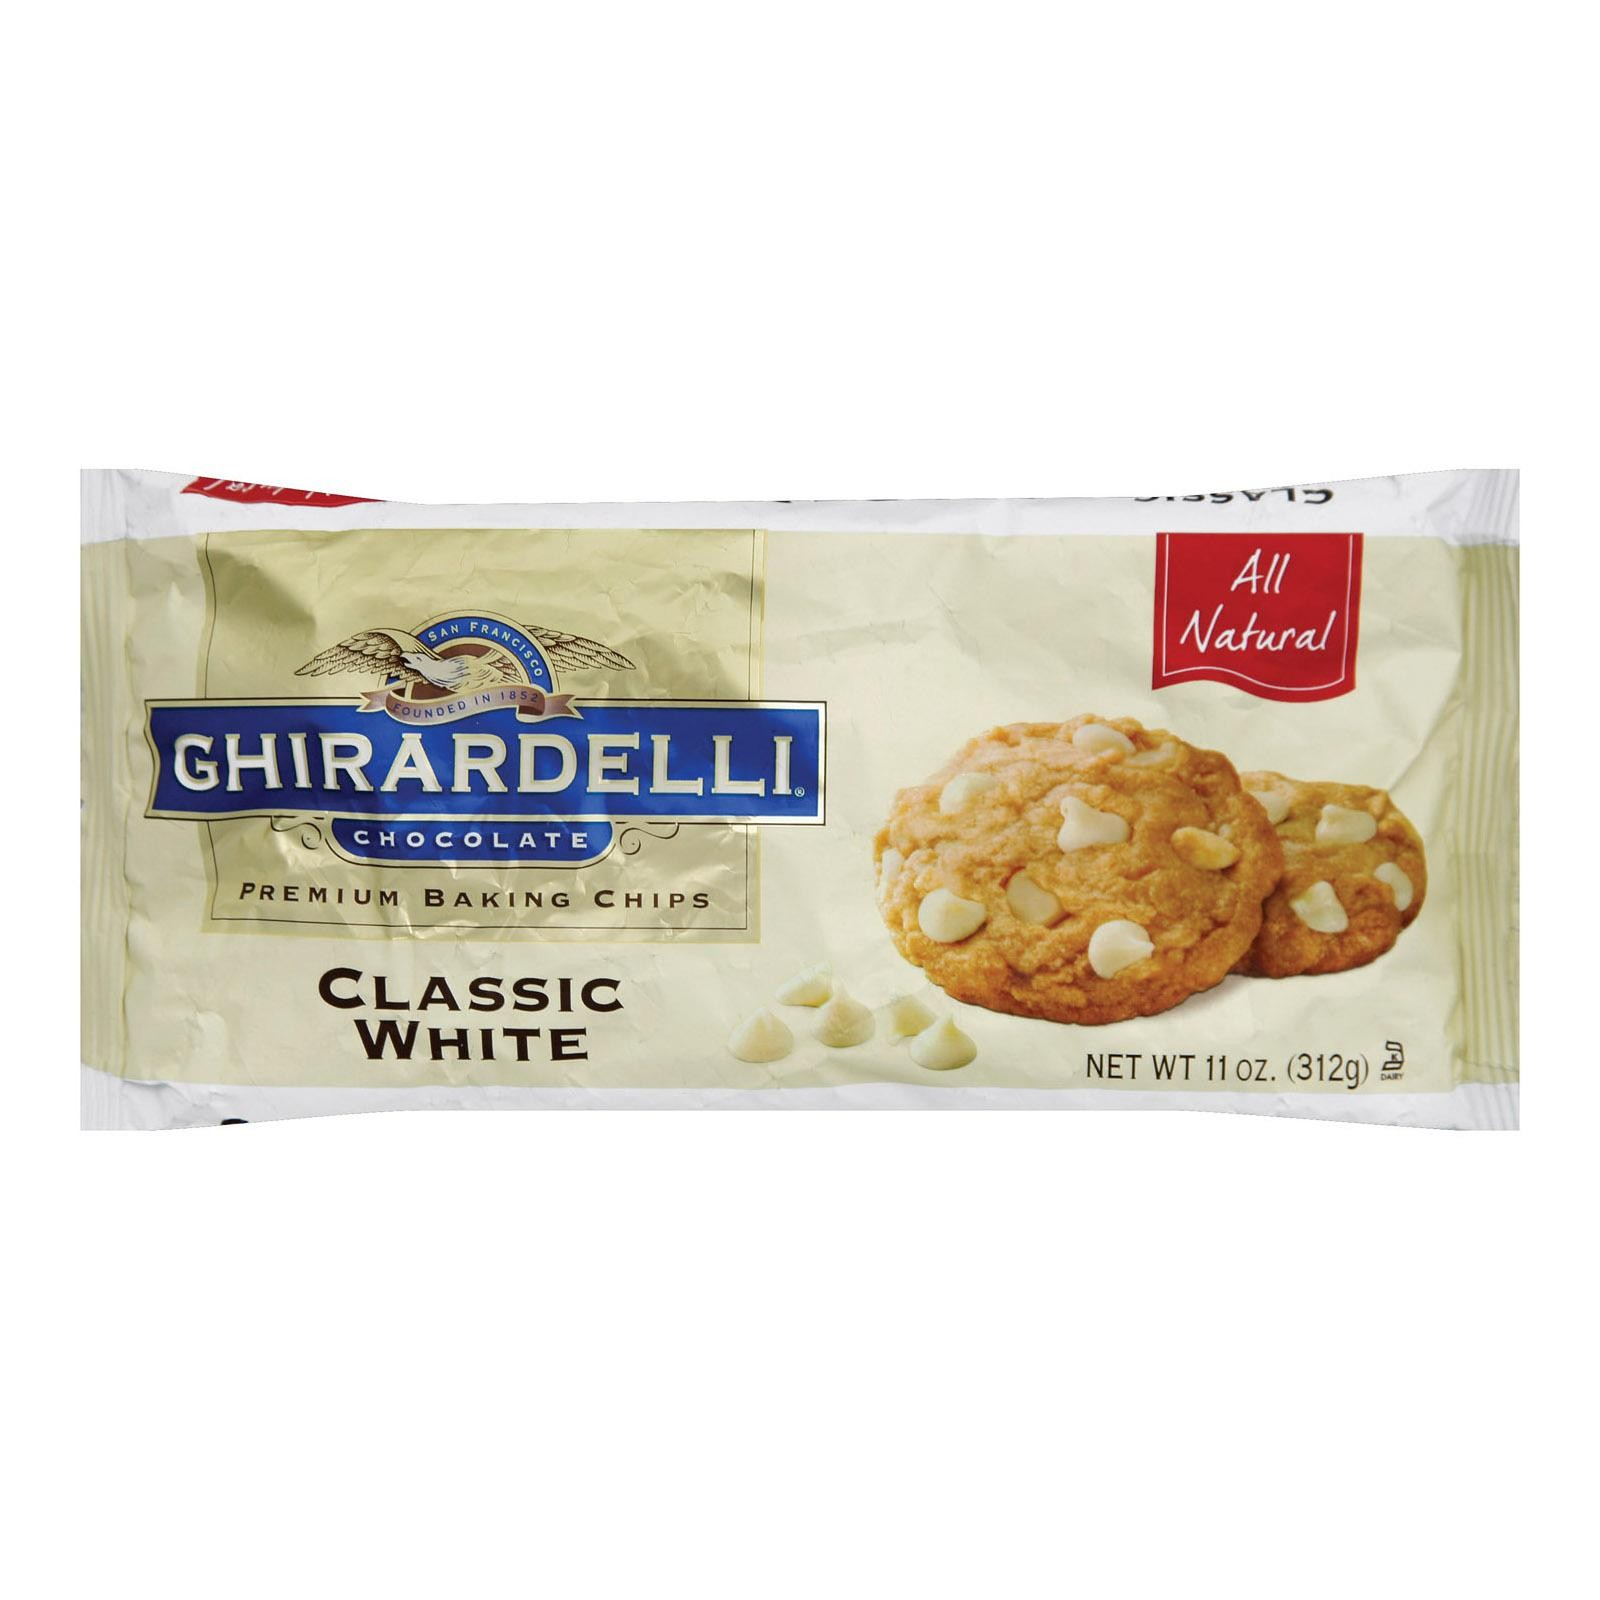 Ghirardelli Classic White Baking Chips - Pack of 12 - 11 Oz.